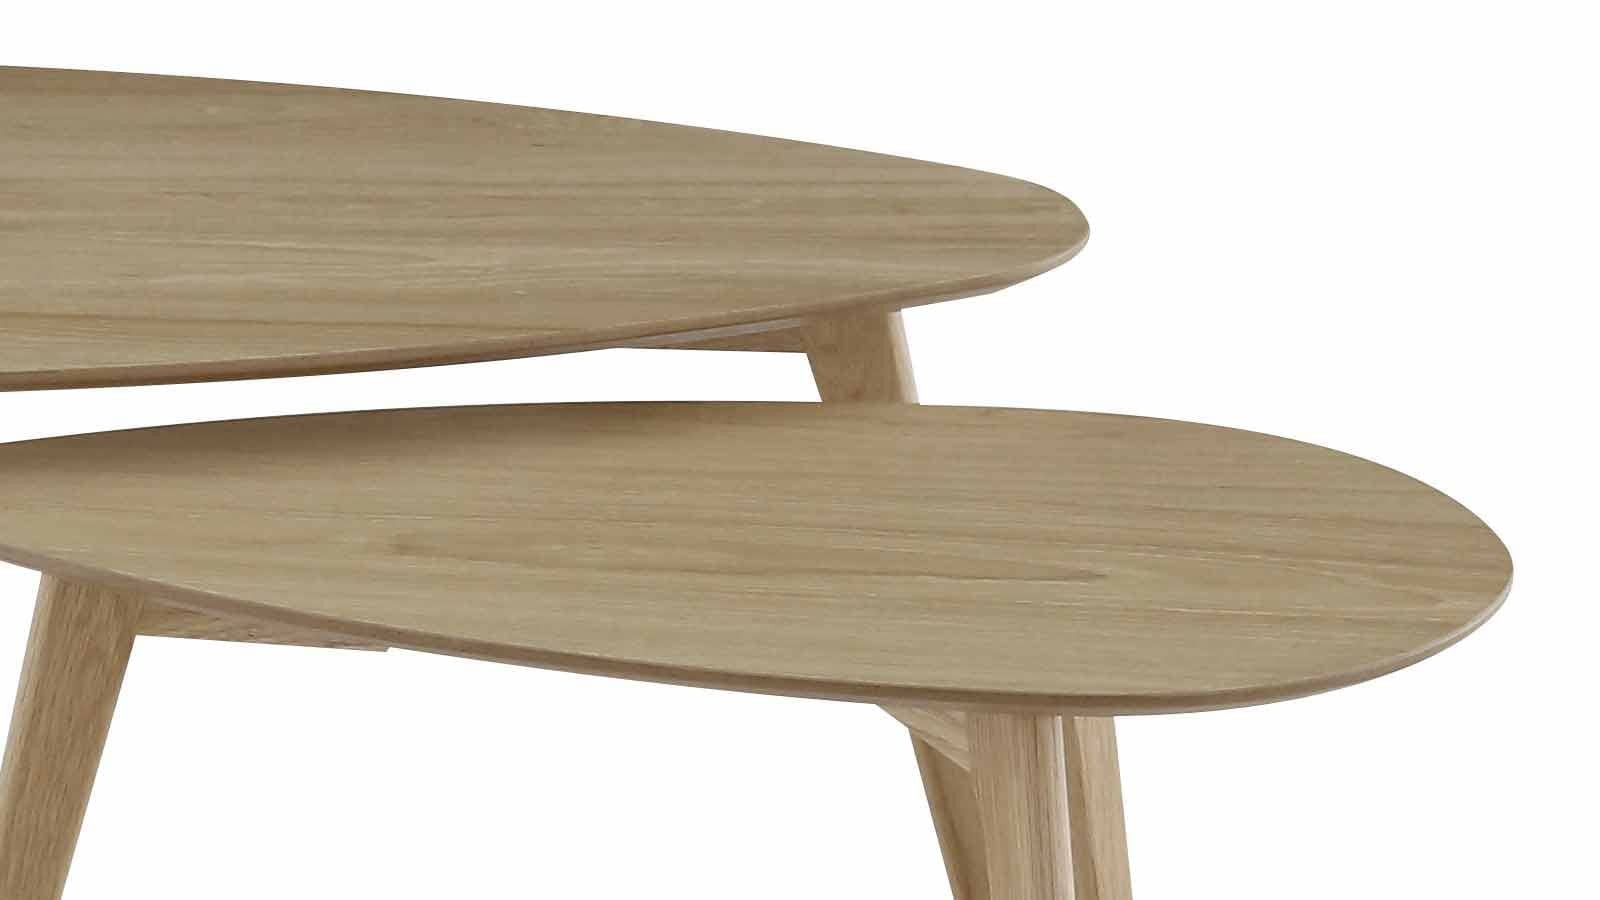 Table Salon Gigogne Set De 2 Tables Basses Gigognes Scandinaves En Chêne Piètement